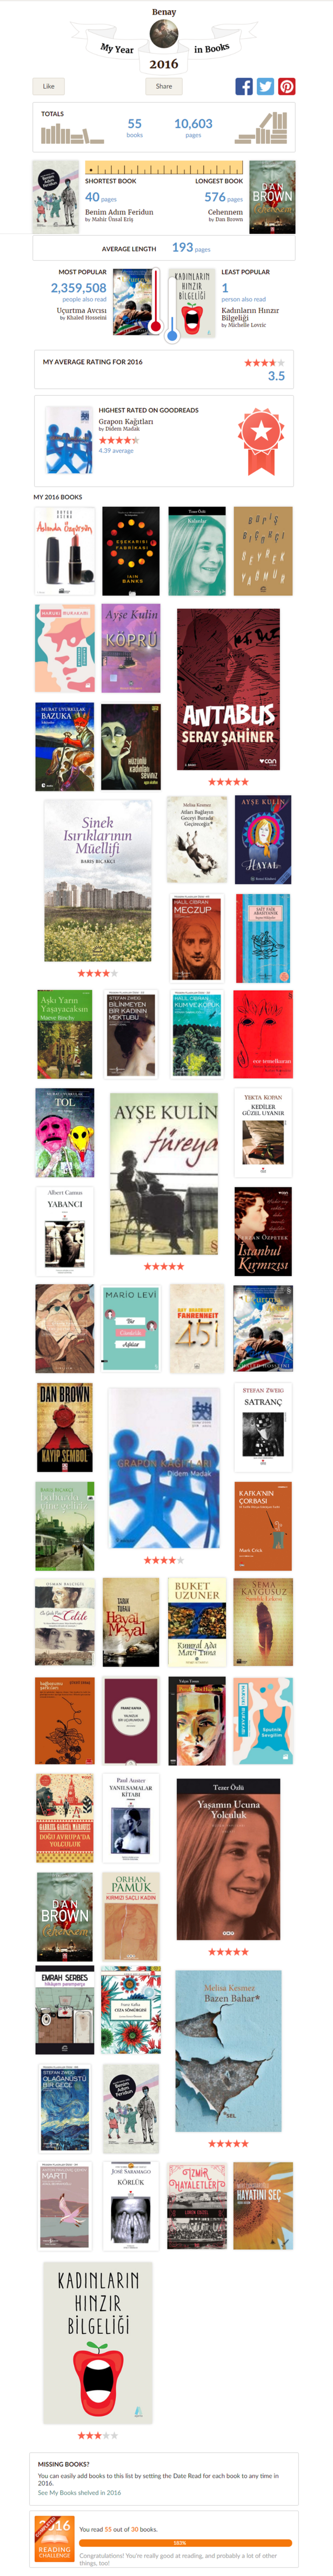 goodreads-2016.png